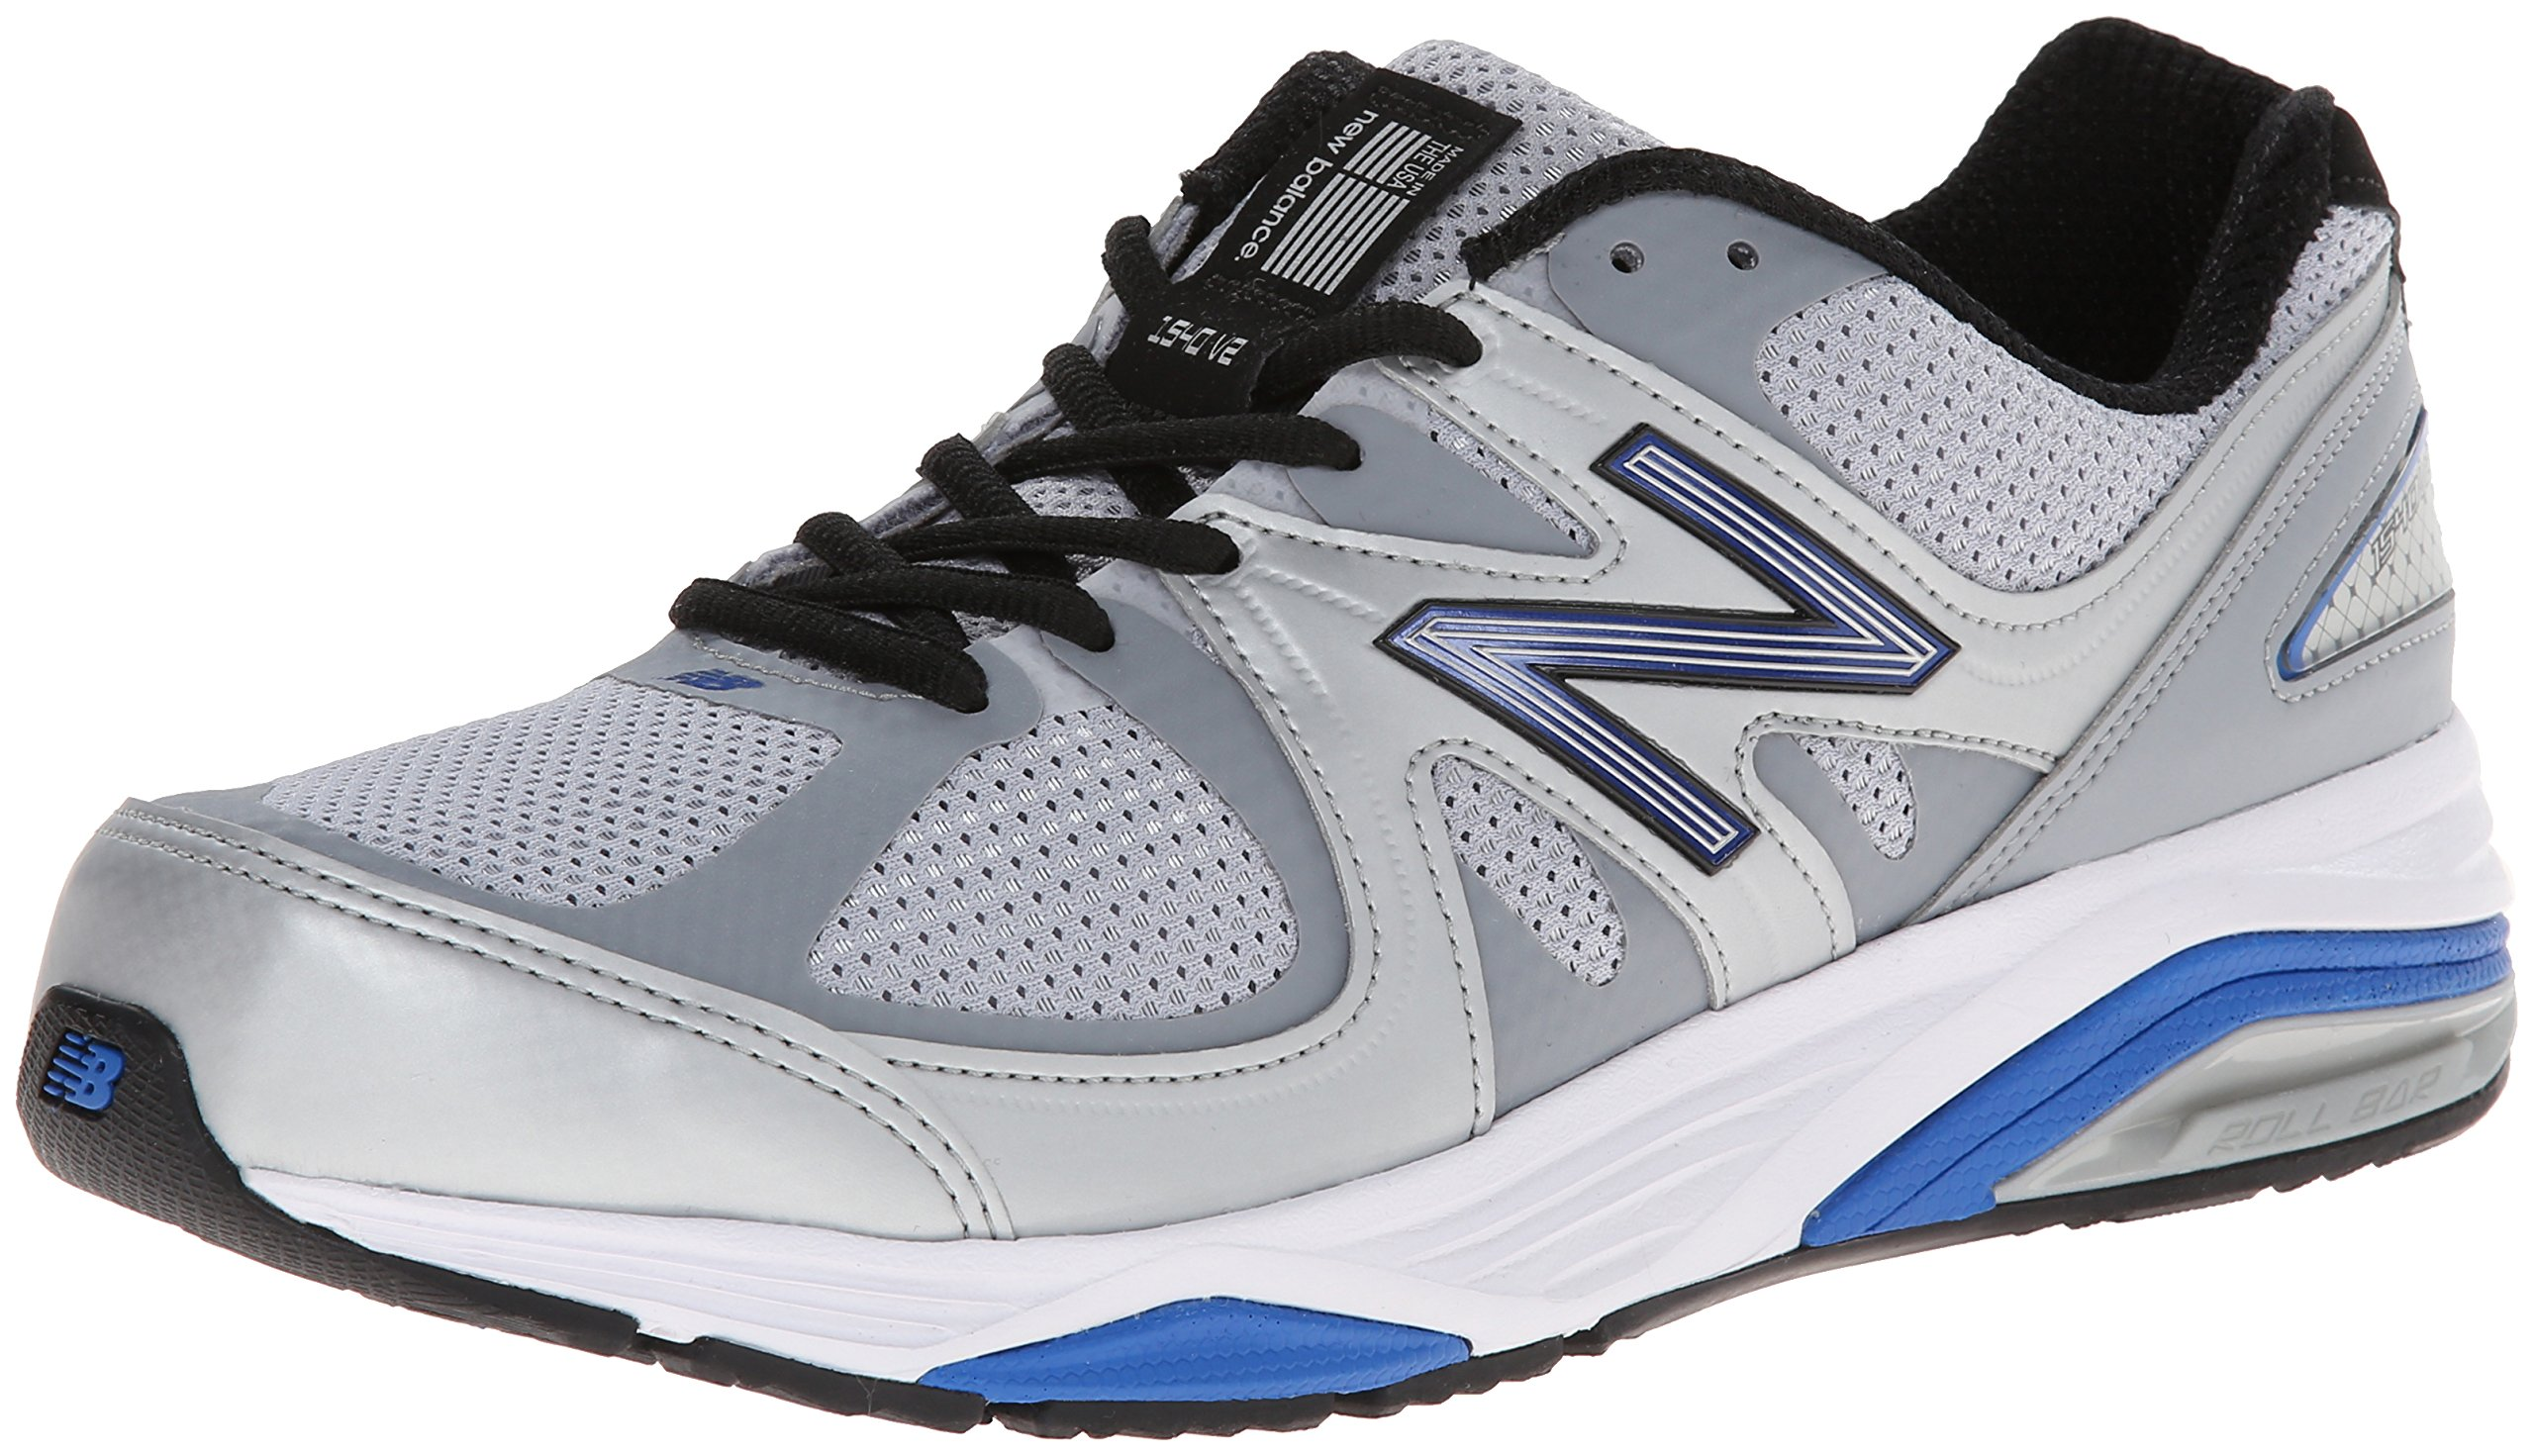 New Balance Men's M1540V2 Running Shoe, Silver/Blue, 11 6E US